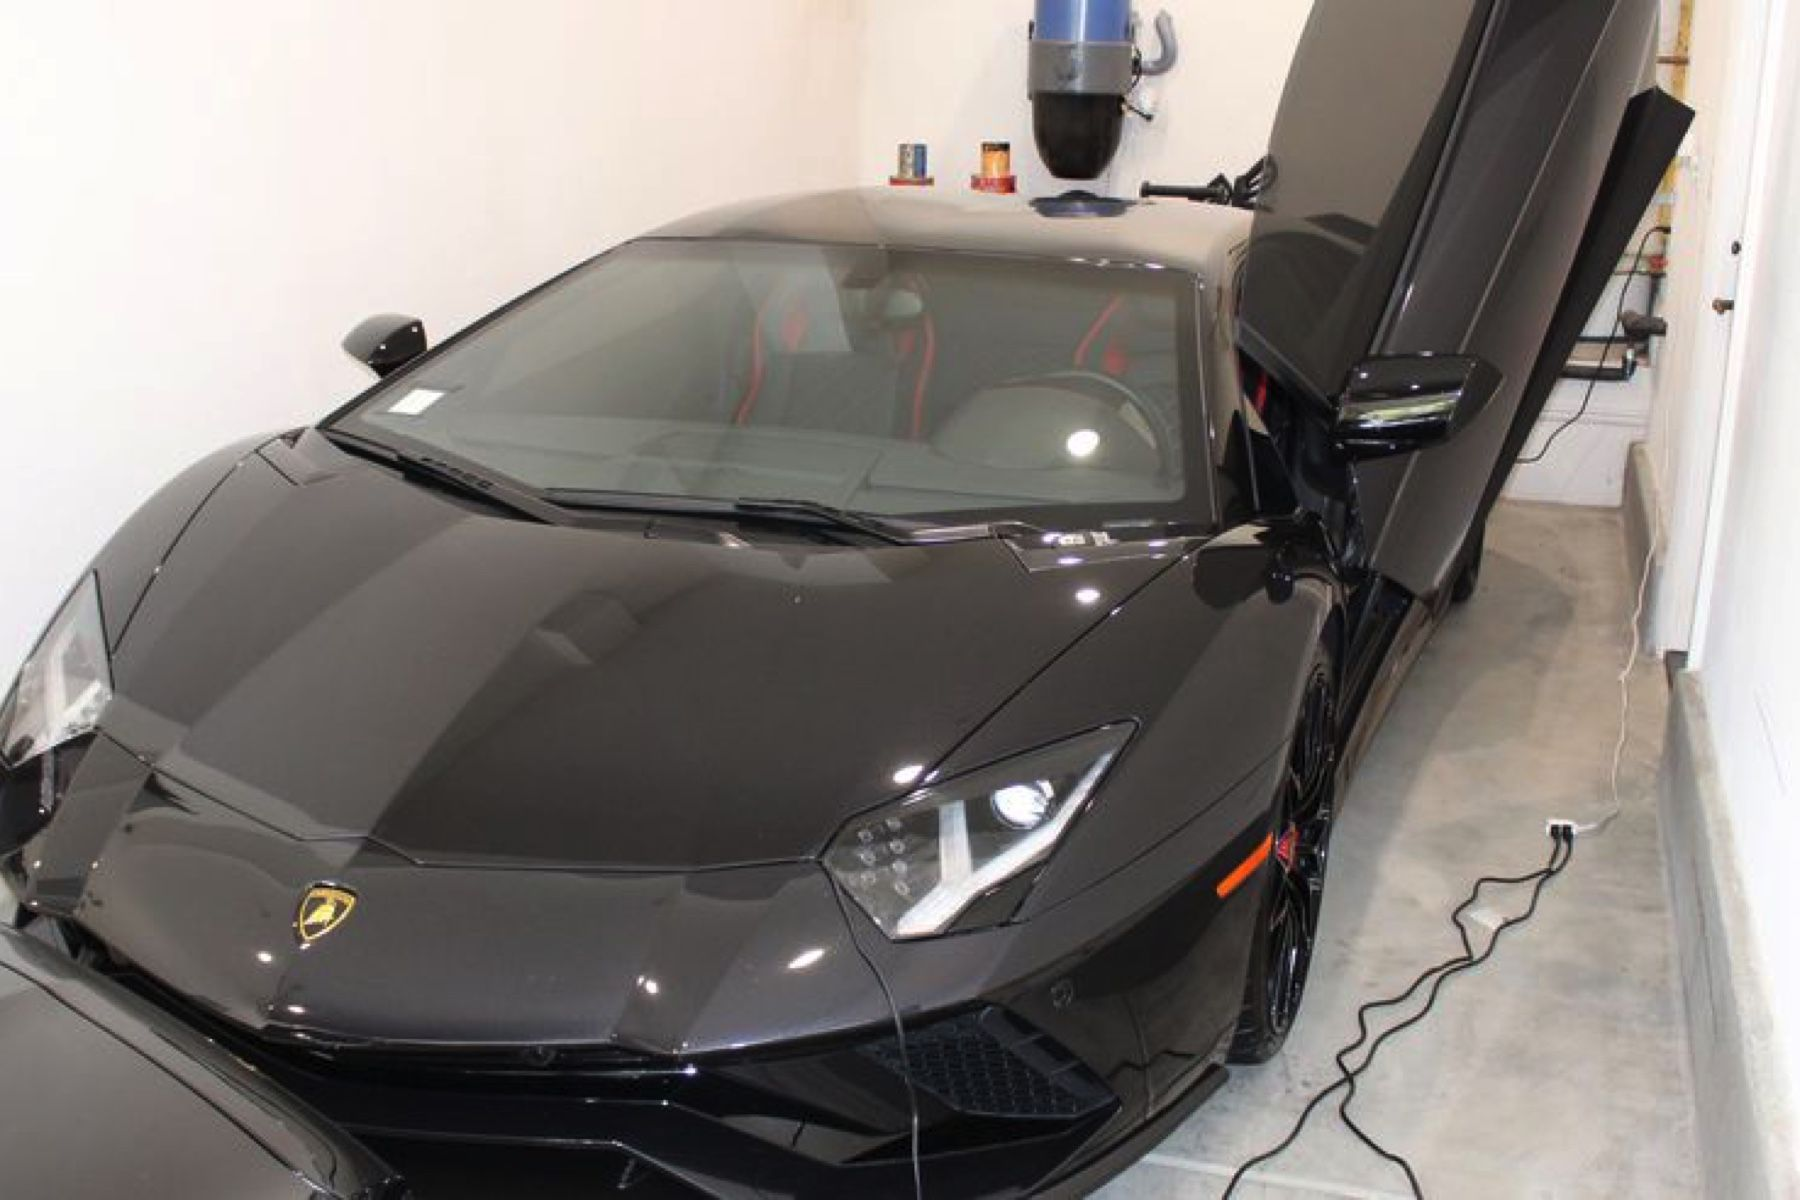 2018 Lamborghini Aventador S seized by US Attorney's Office